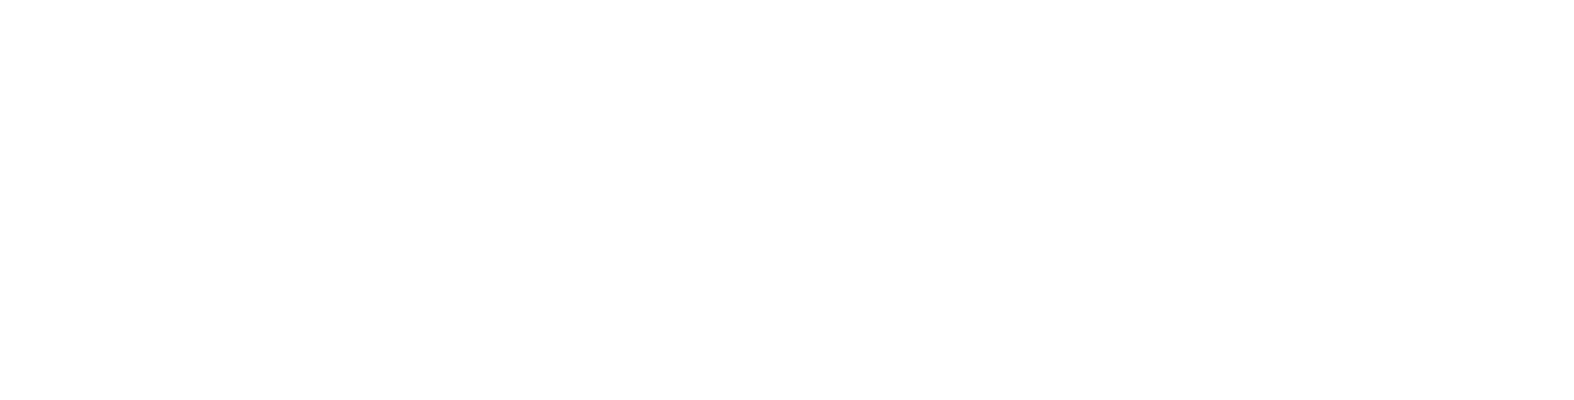 Collective Growth Corporation